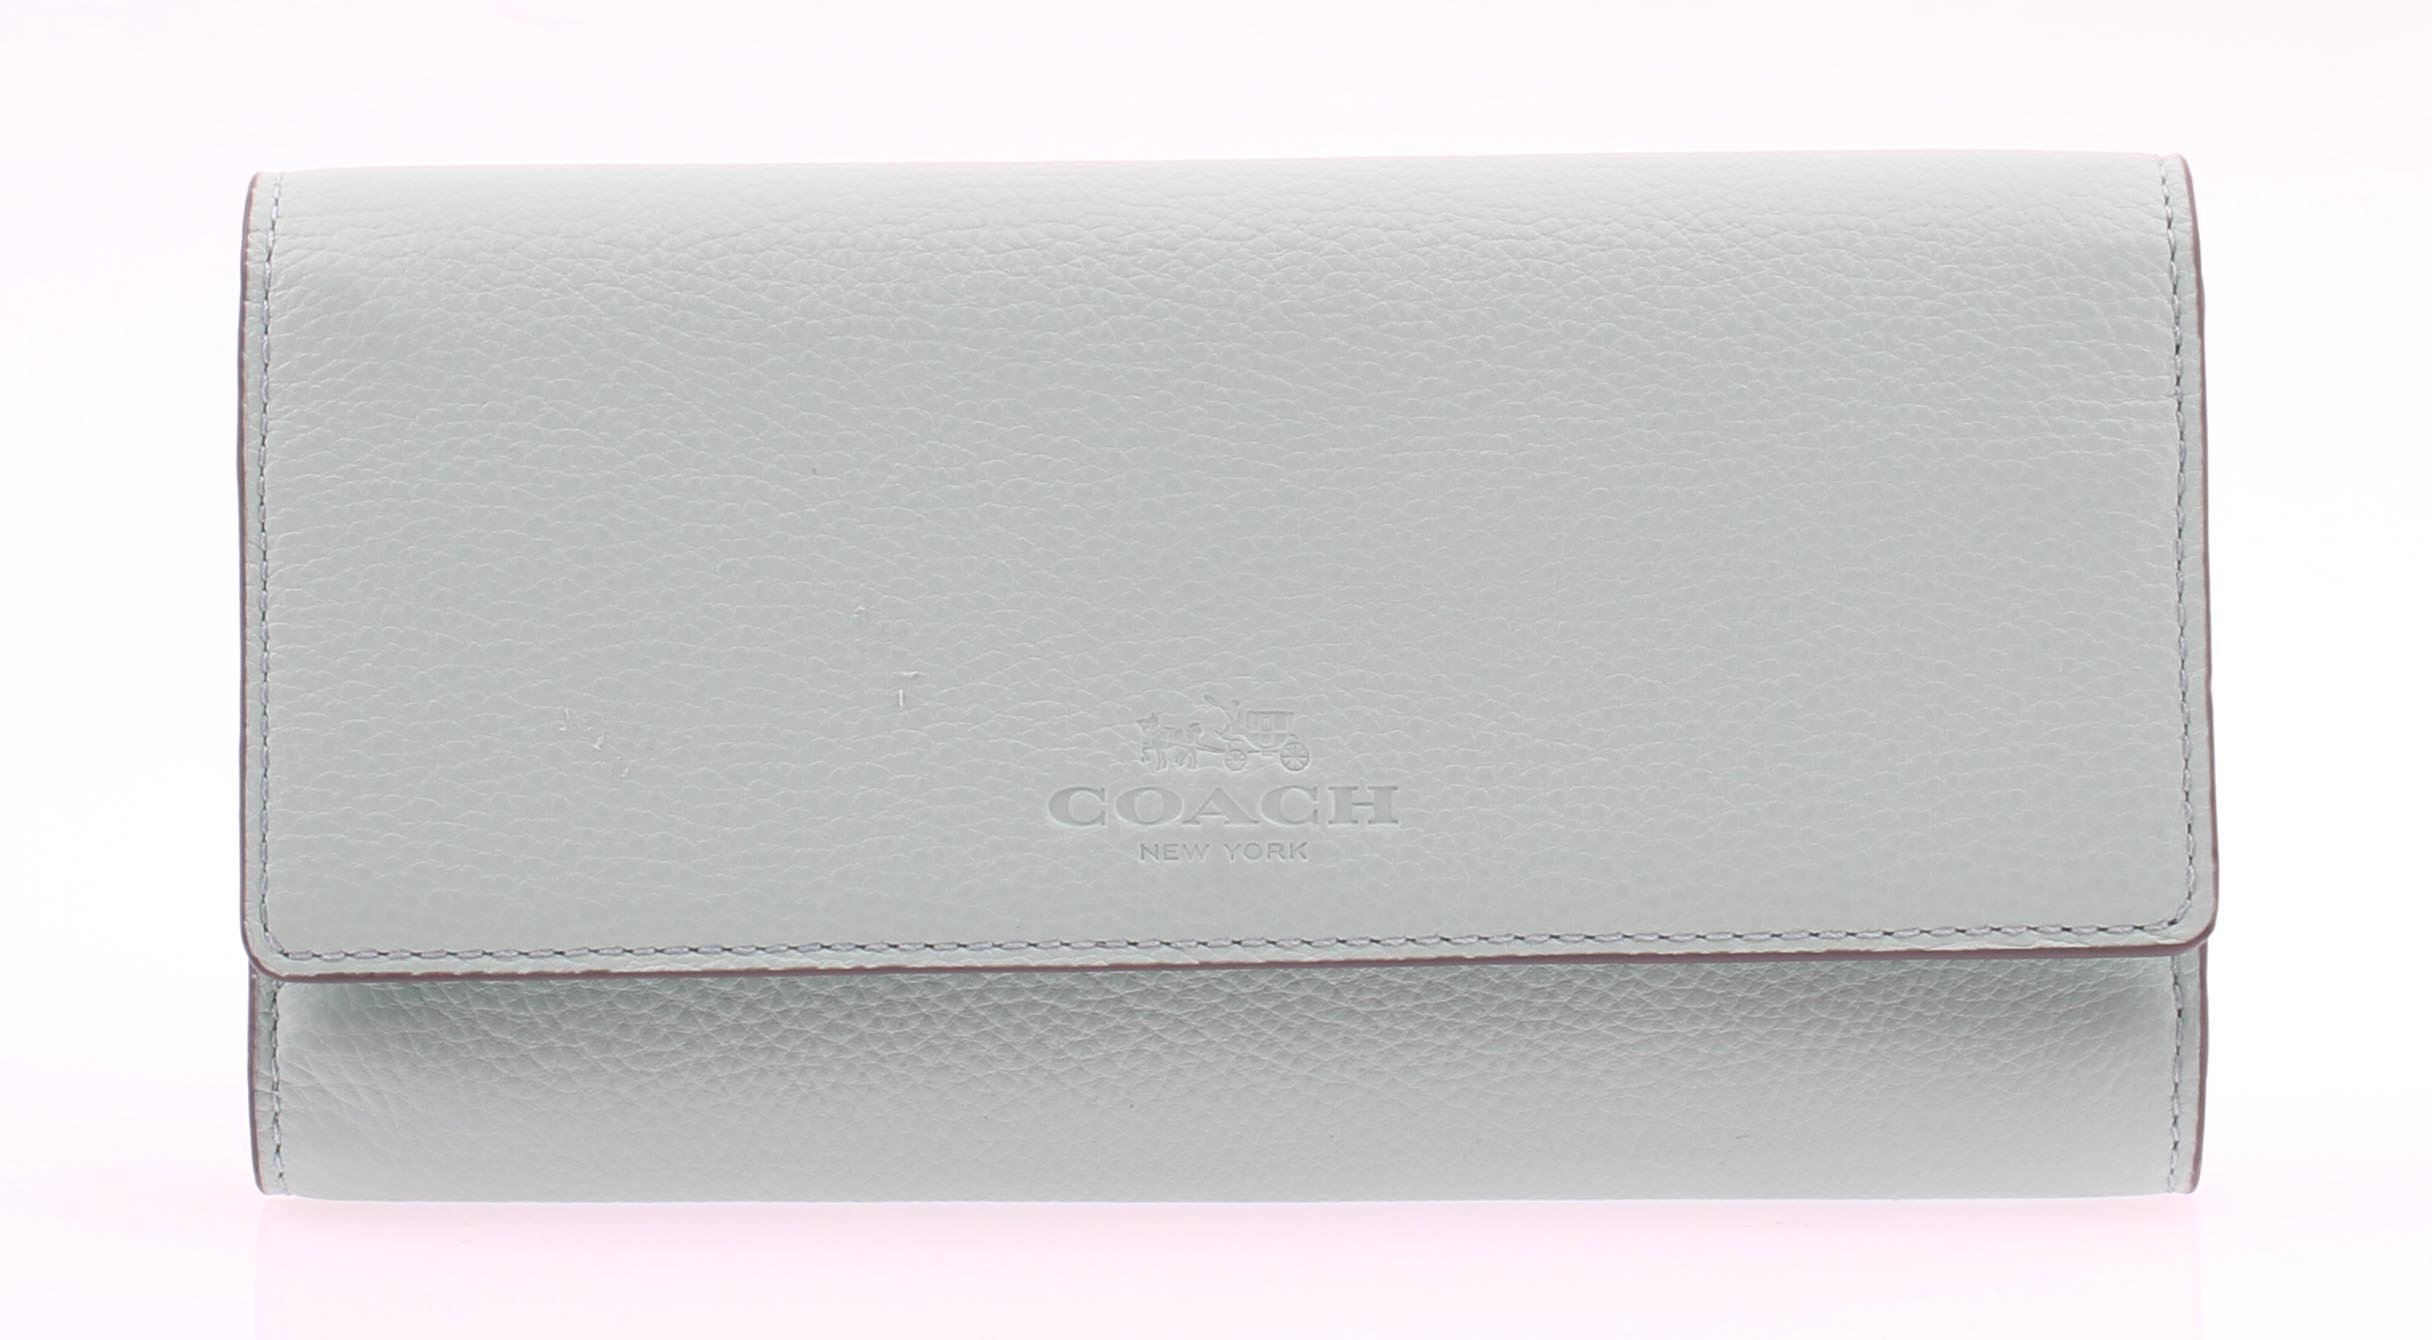 Coach Pebbled leather Trifold Wallet in Seaglass F53708 SVELQ by Coach